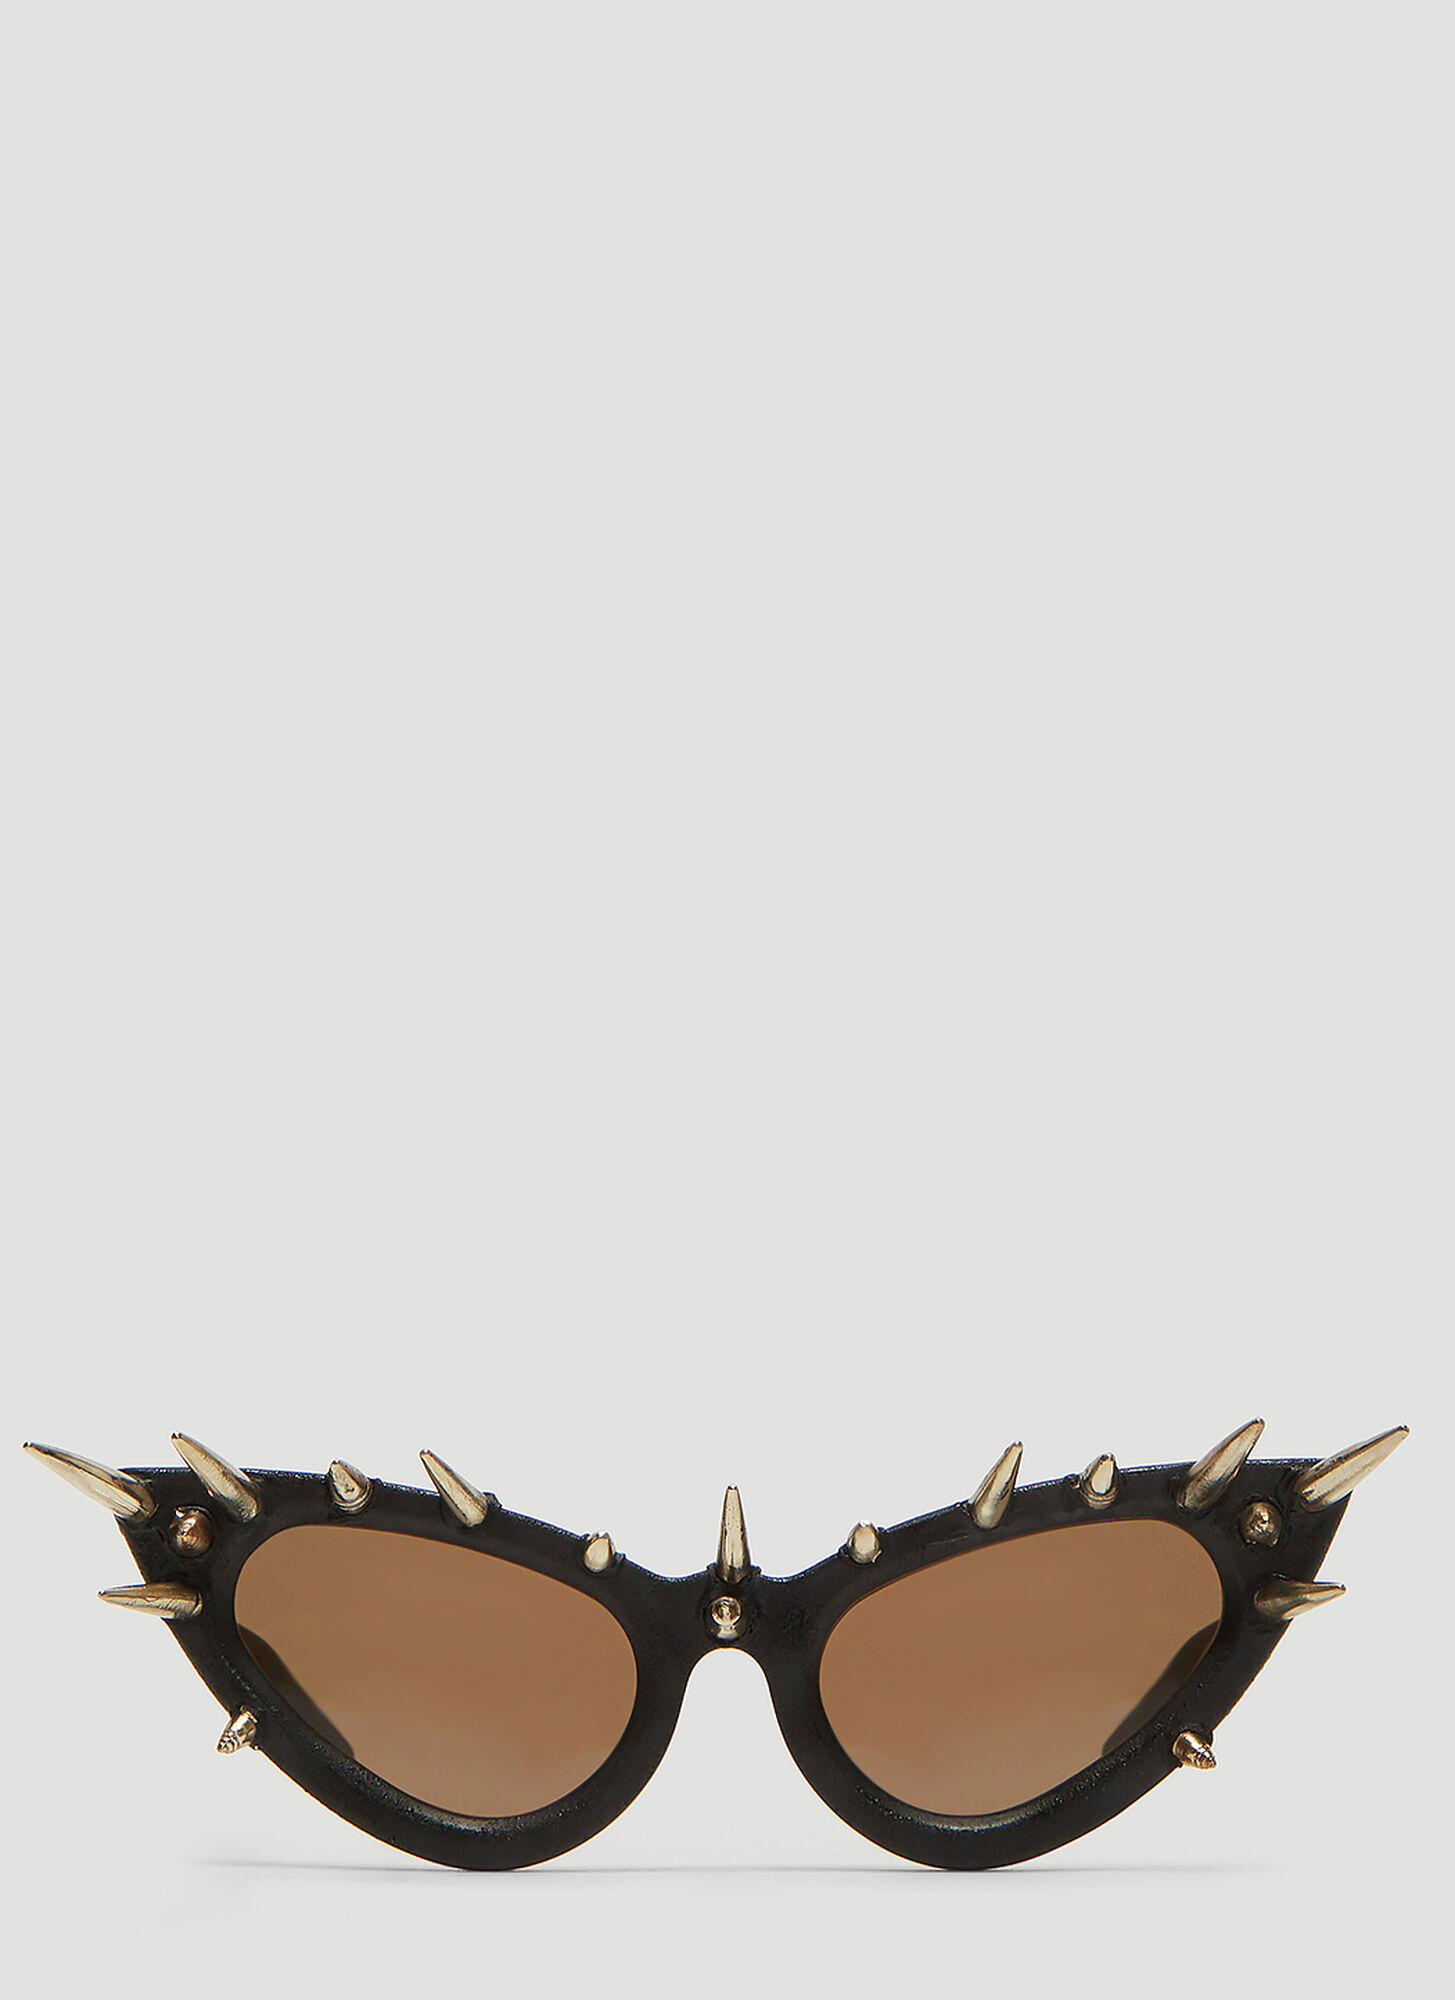 Kuboraum Mask Y3 Cat Eye Stud Embellished Sunglasses in Black